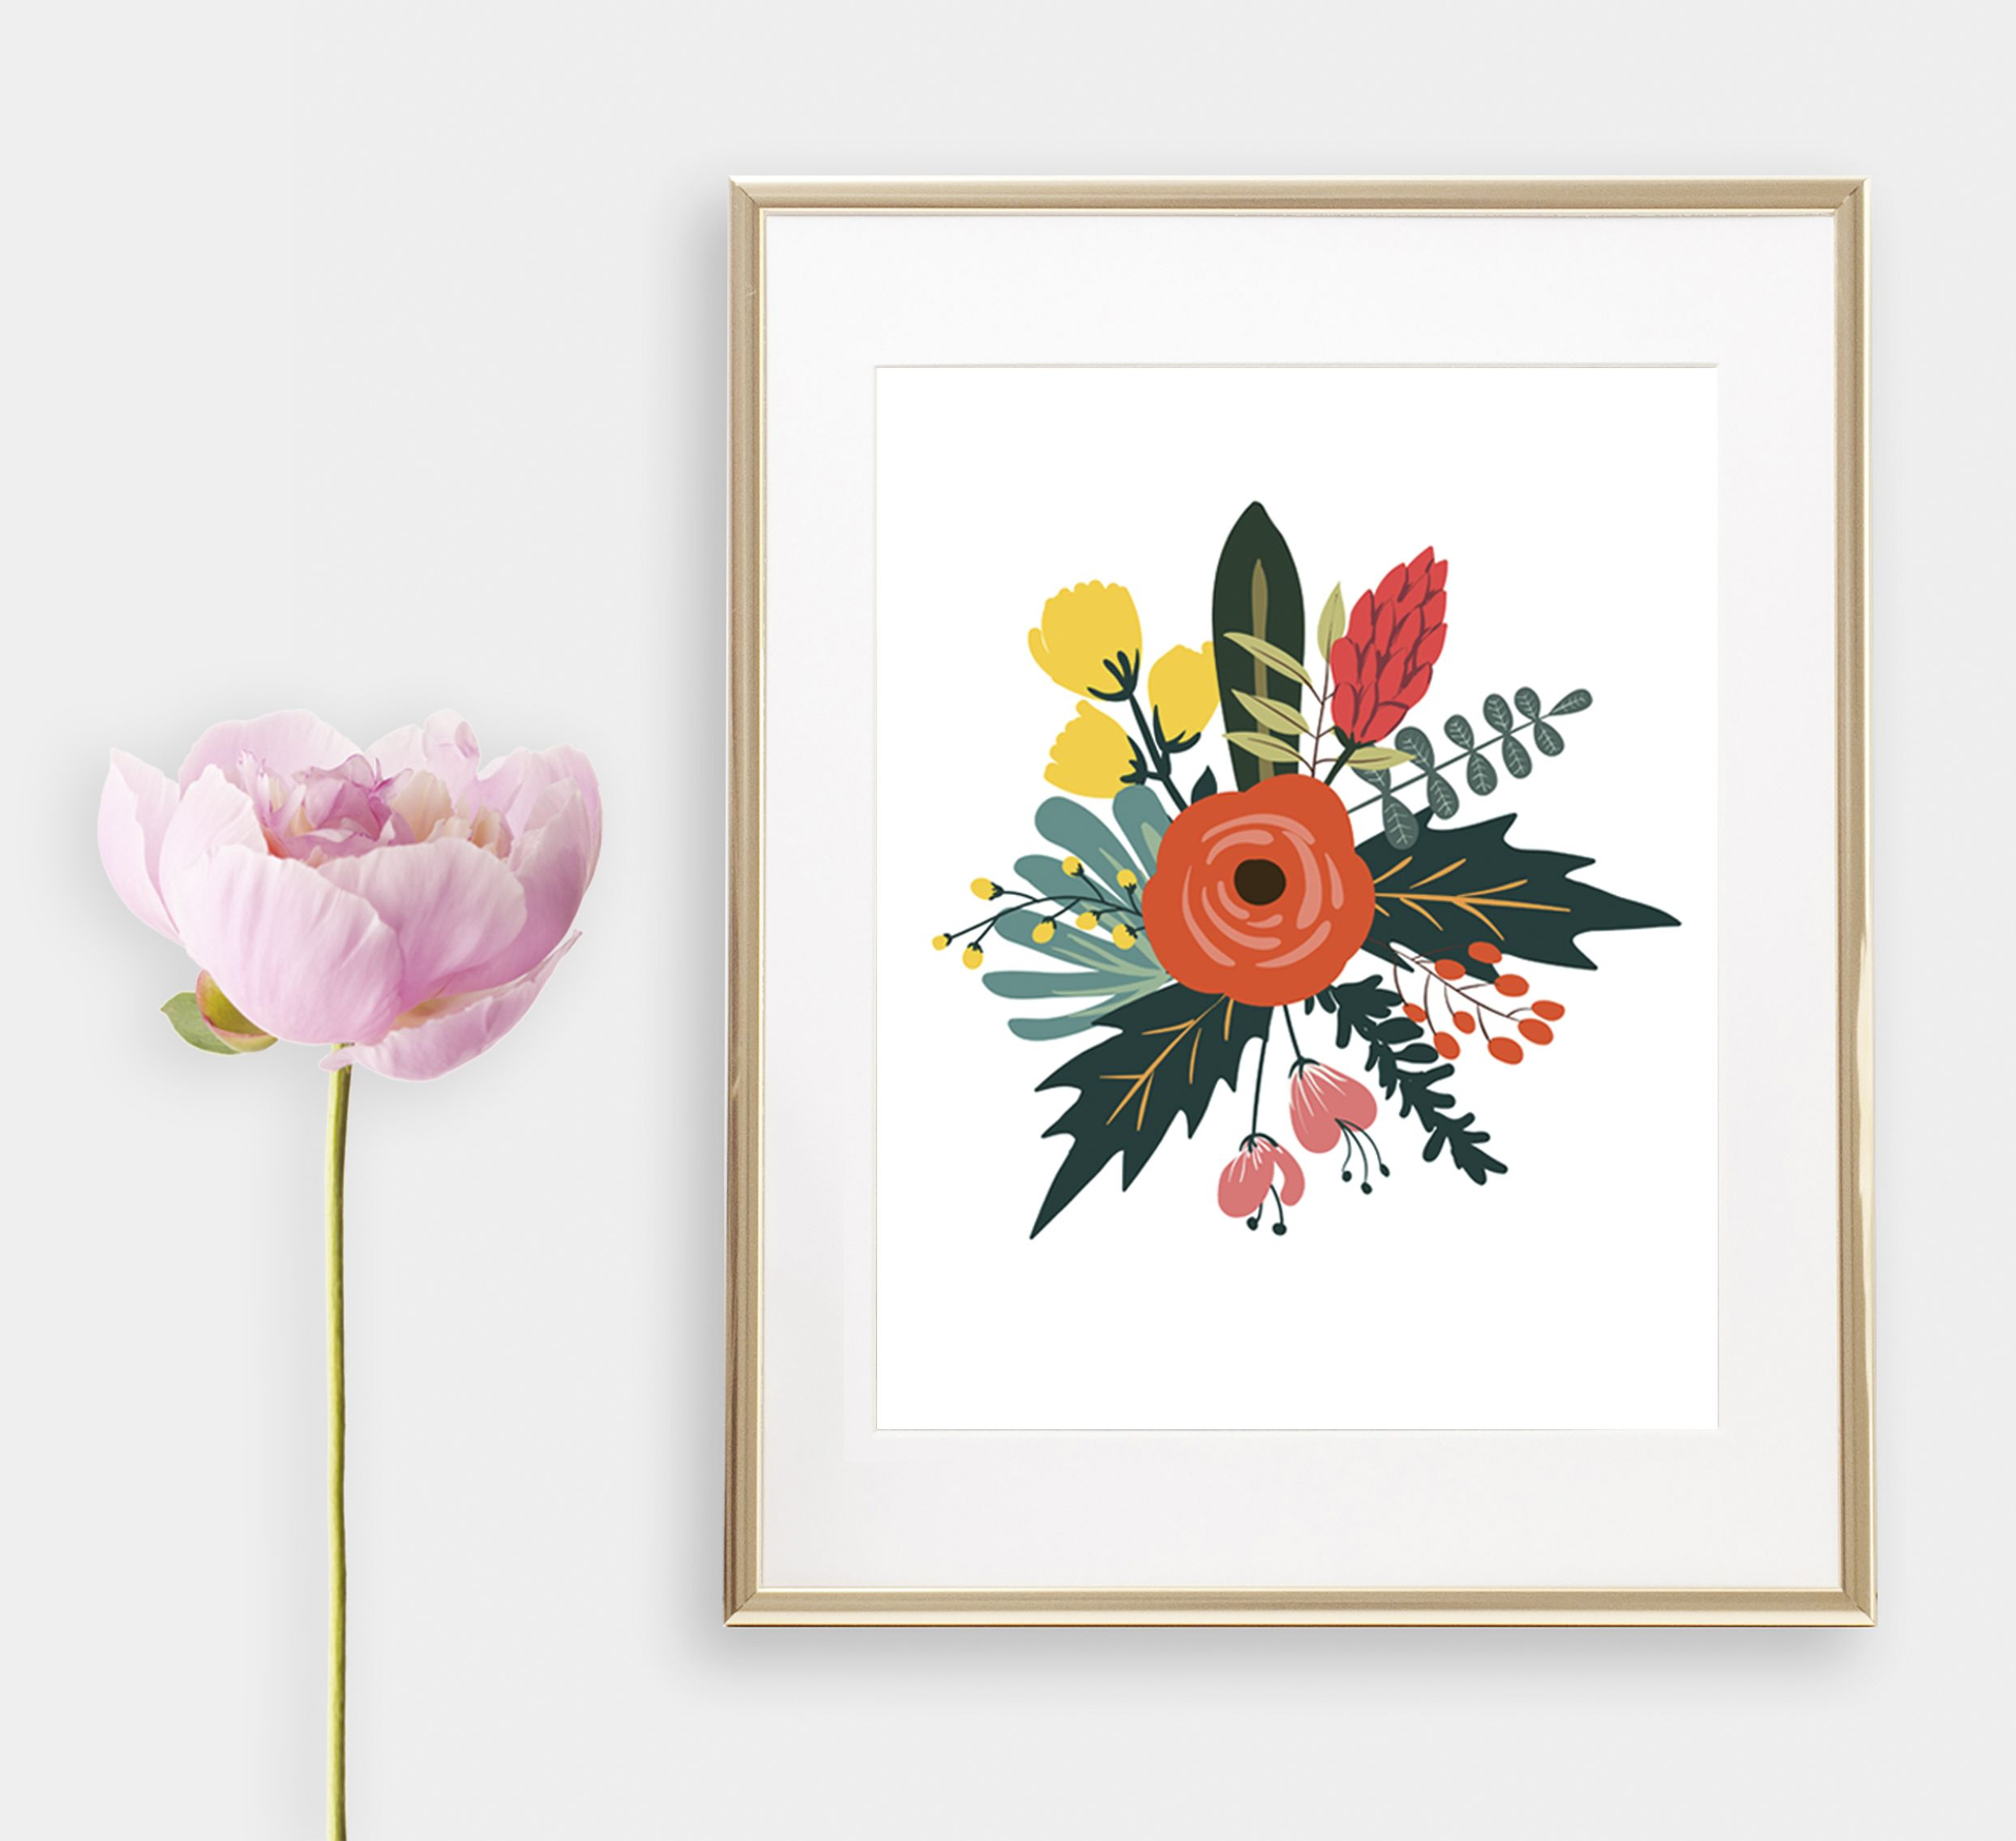 Floral wall artwork orange peony illustrated art print will be a bright accent of a